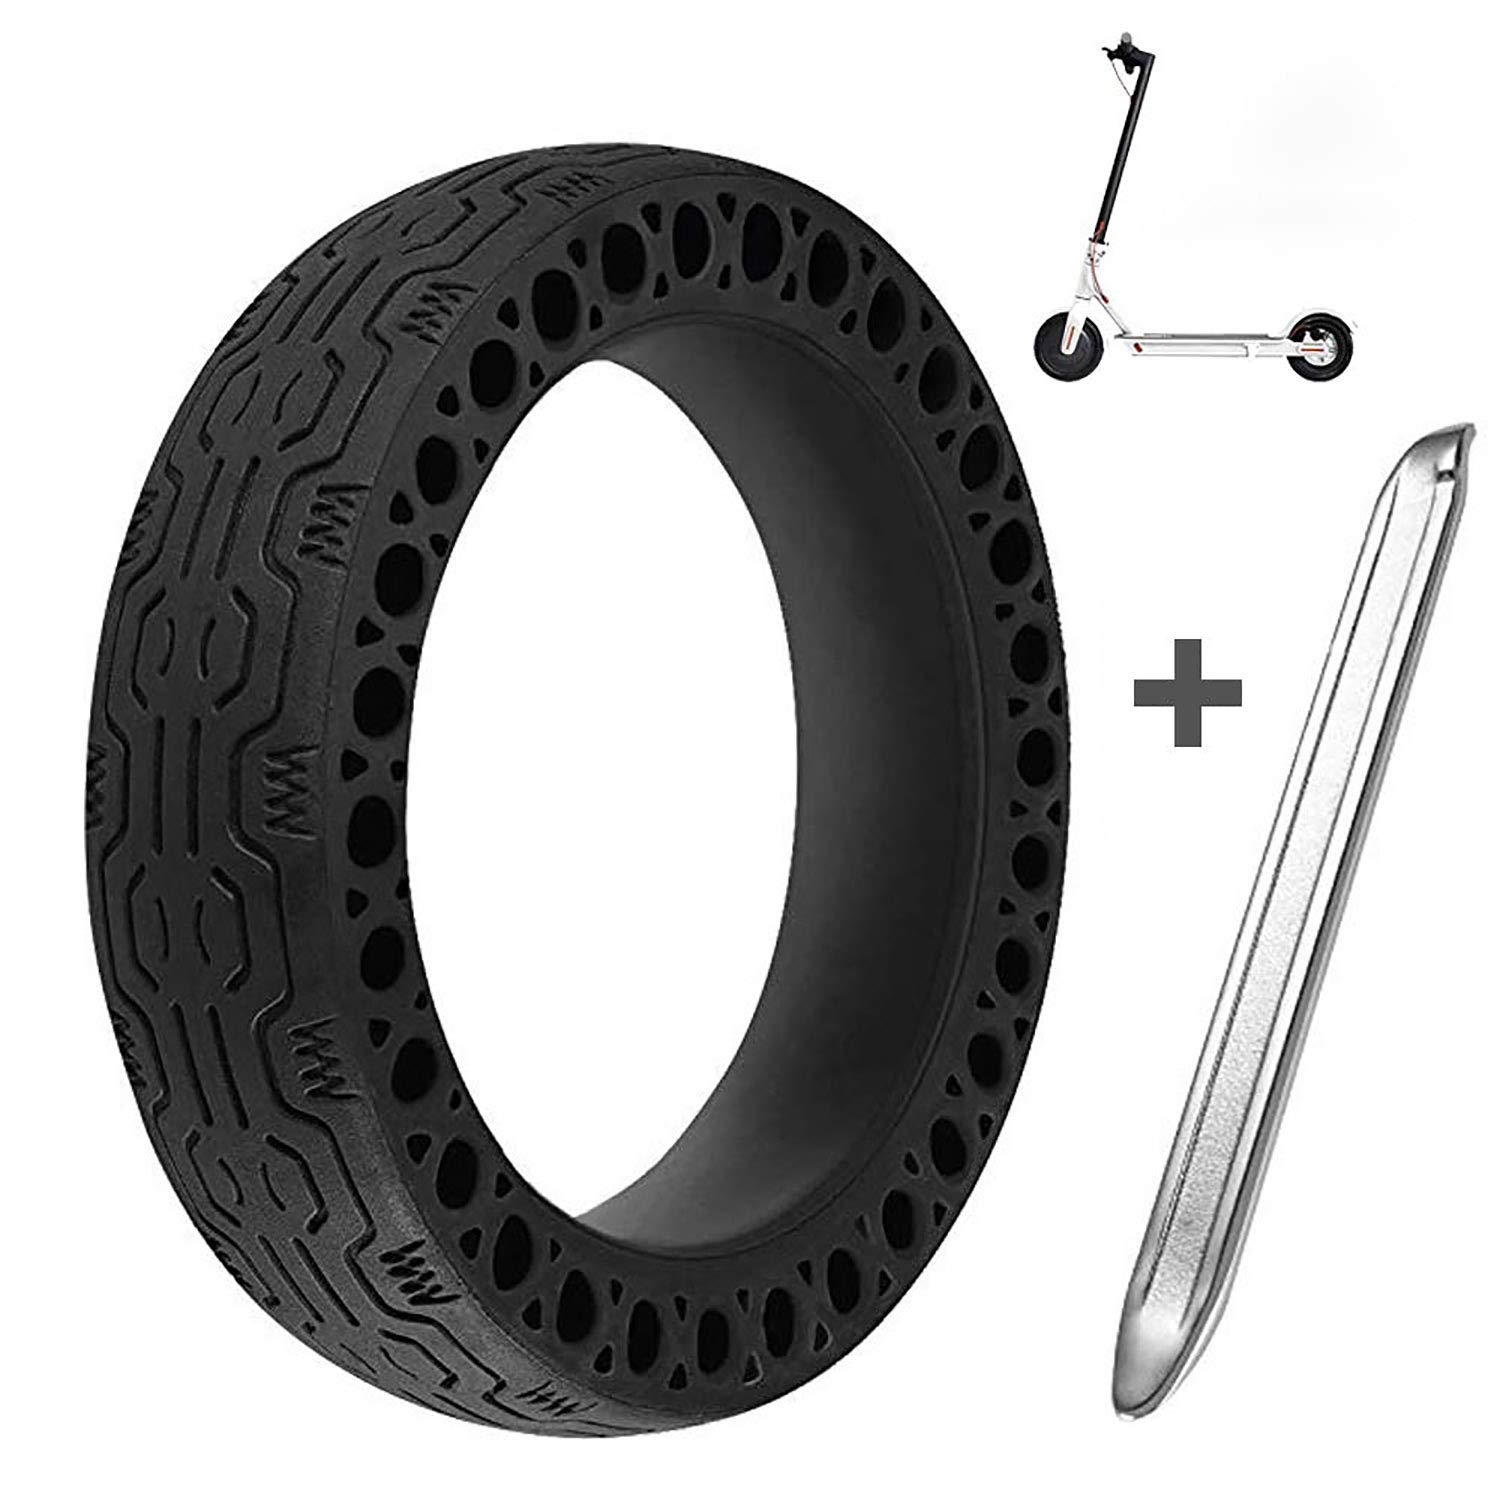 Suremita Honeycomb Rubber Solid Tire Replacement for Electric Scooter Xiaomi m365, 8.5 inch Scooter Wheel's Replacement Explosion-Proof Solid Tire + 1 Stainless Steel Tire Levers by Suremita